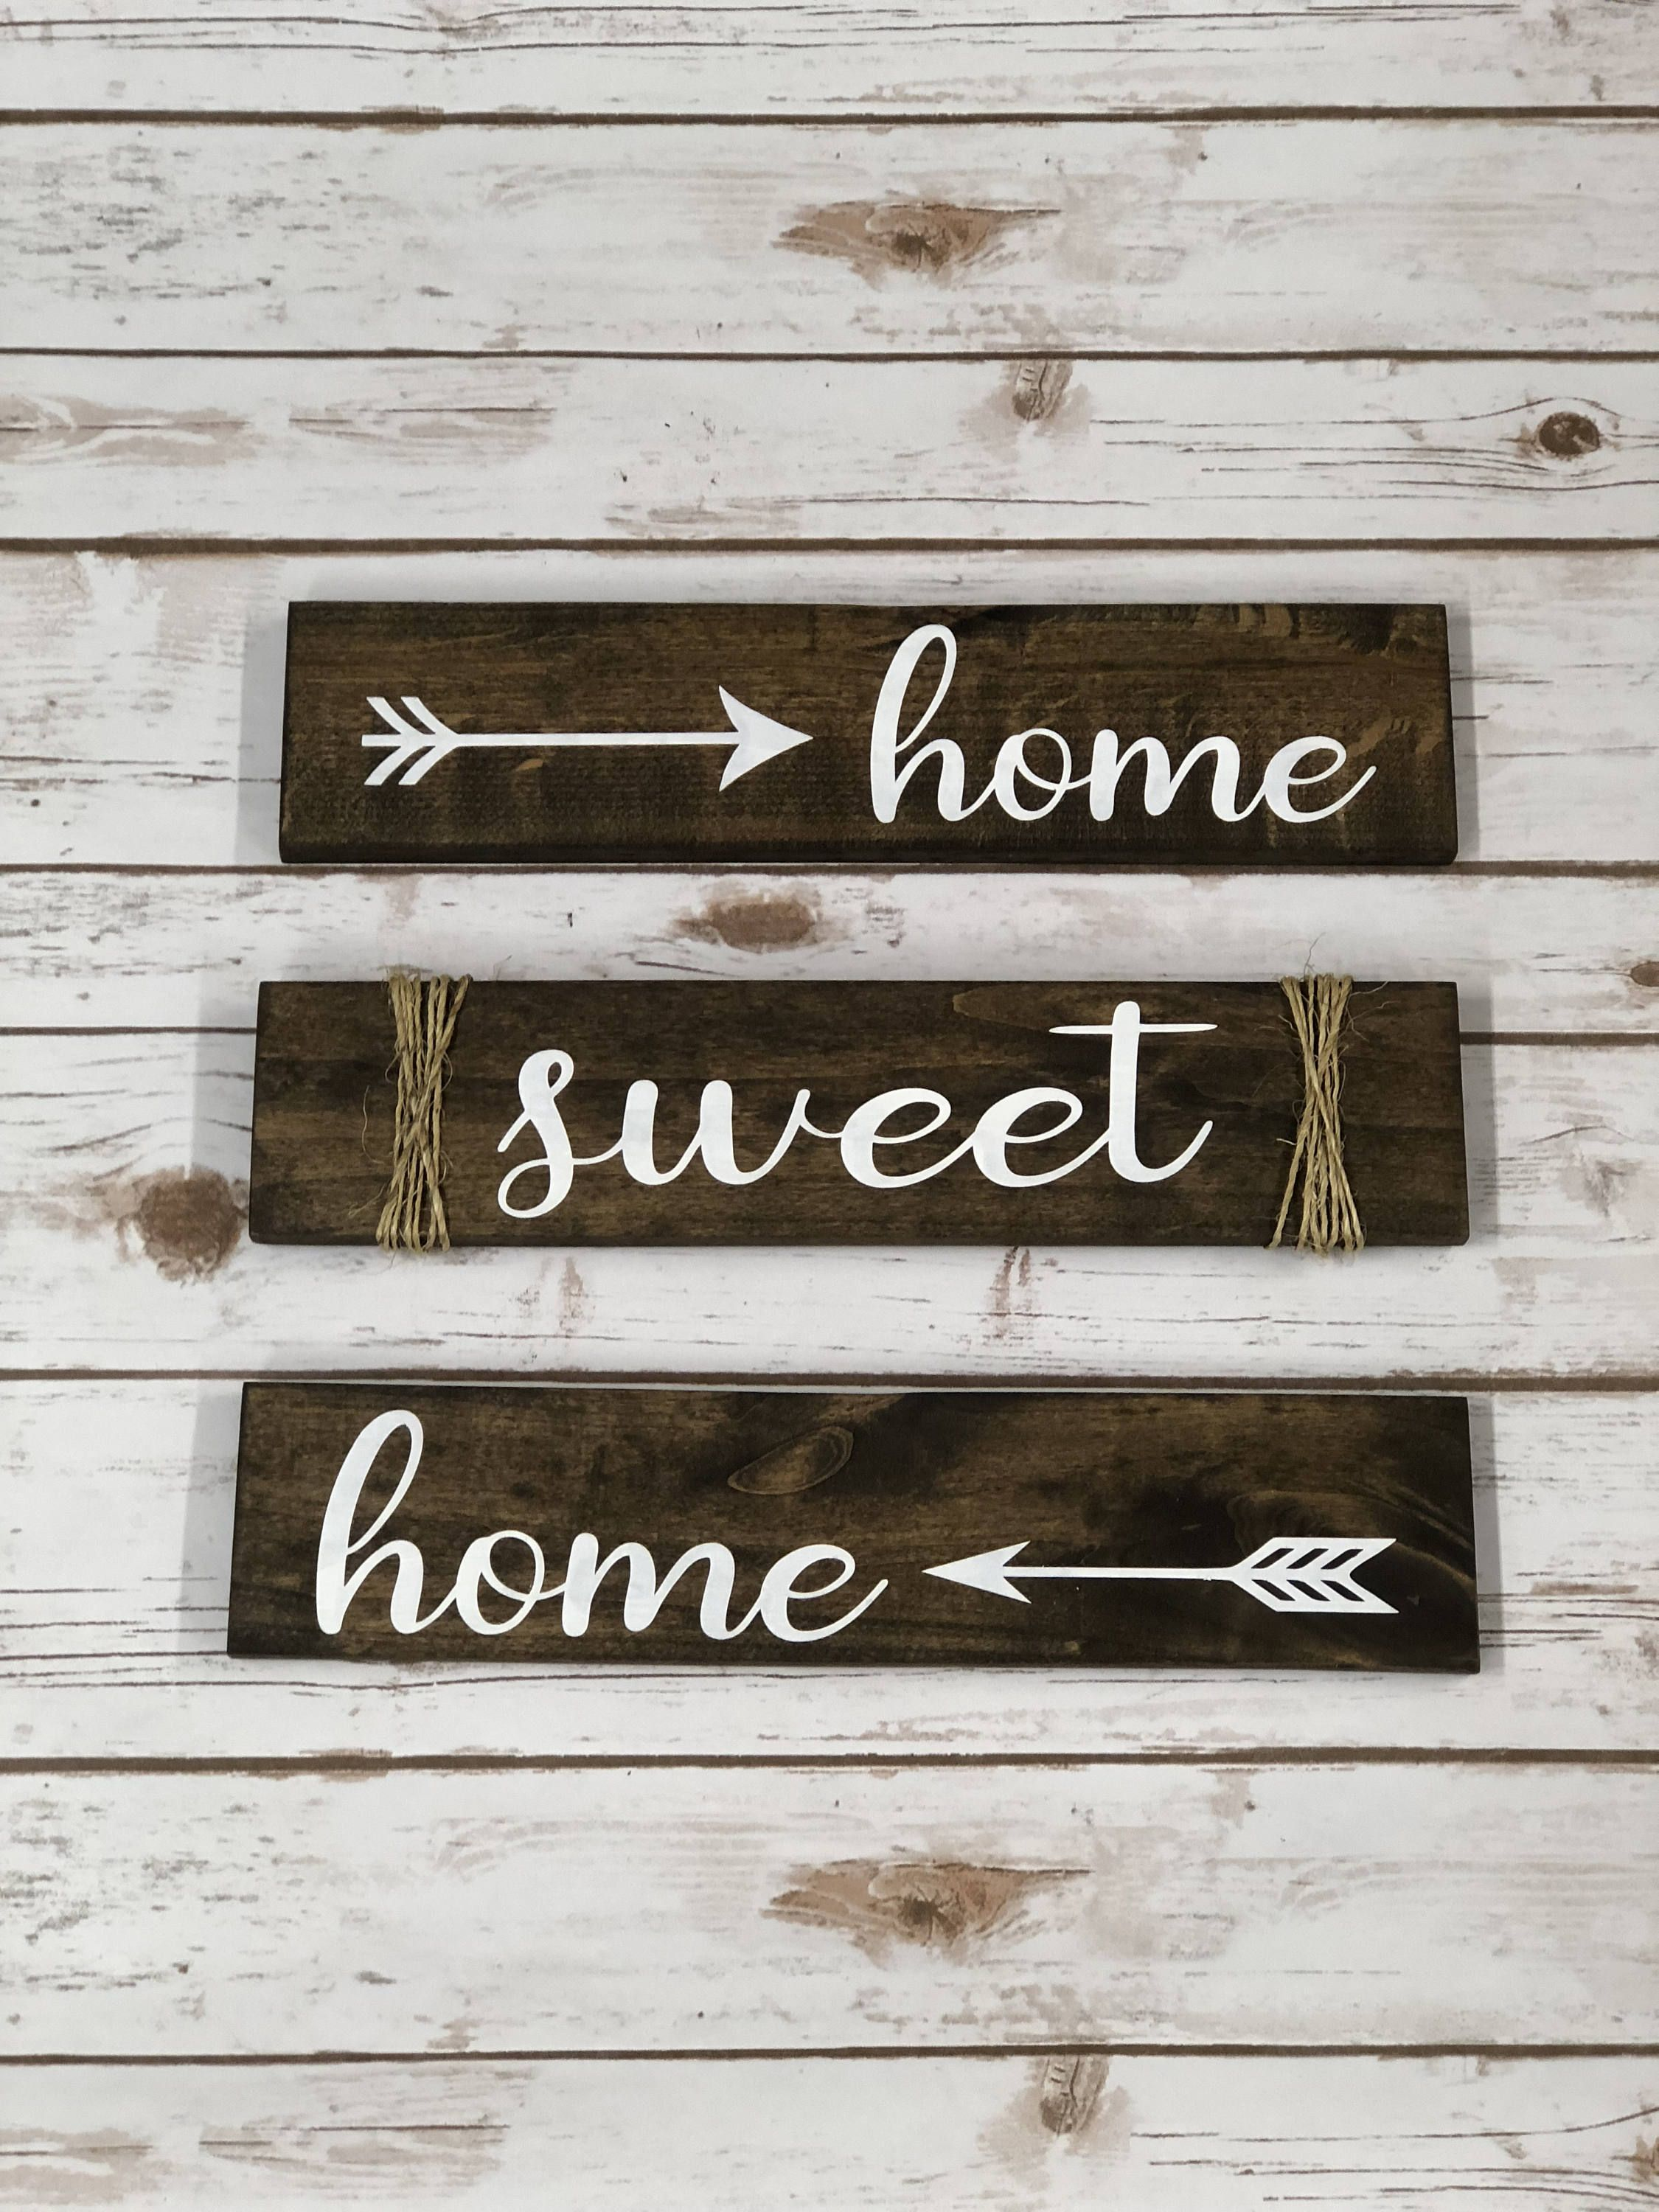 Home Sweet Home Home Decor Wood Signs Etsy Home Wooden Signs Diy Wood Projects Barn Wood Signs